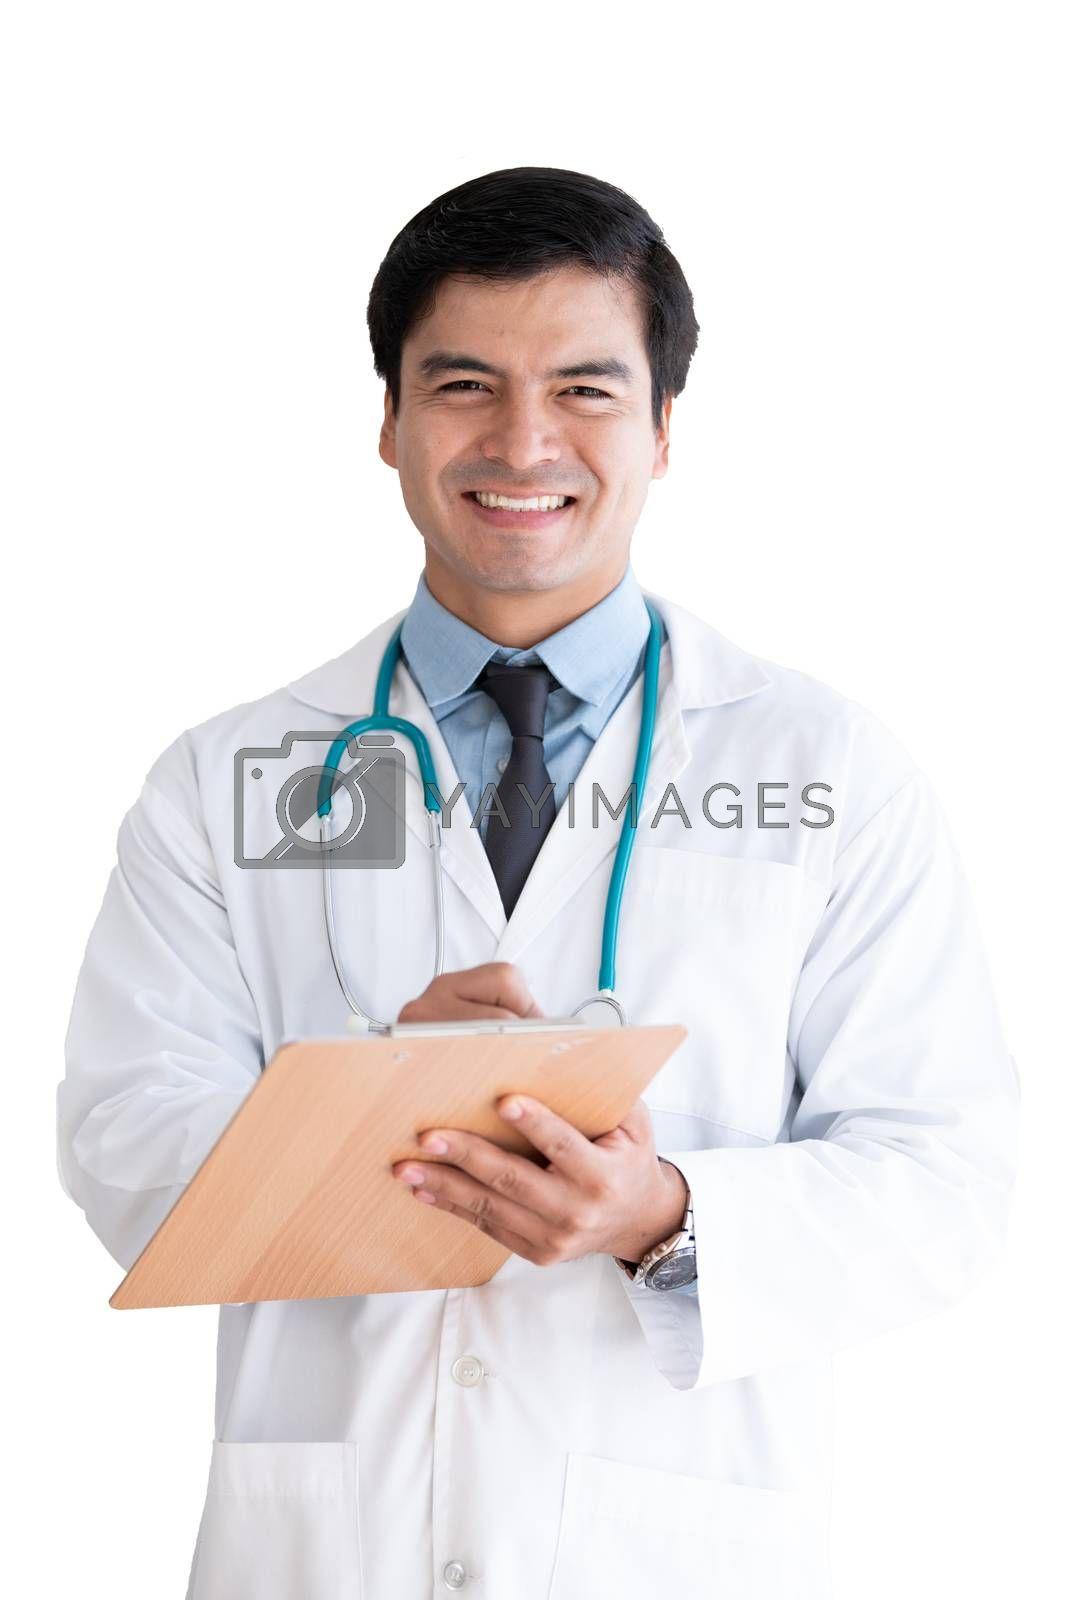 A senior doctor isolated has note and writing on white background.